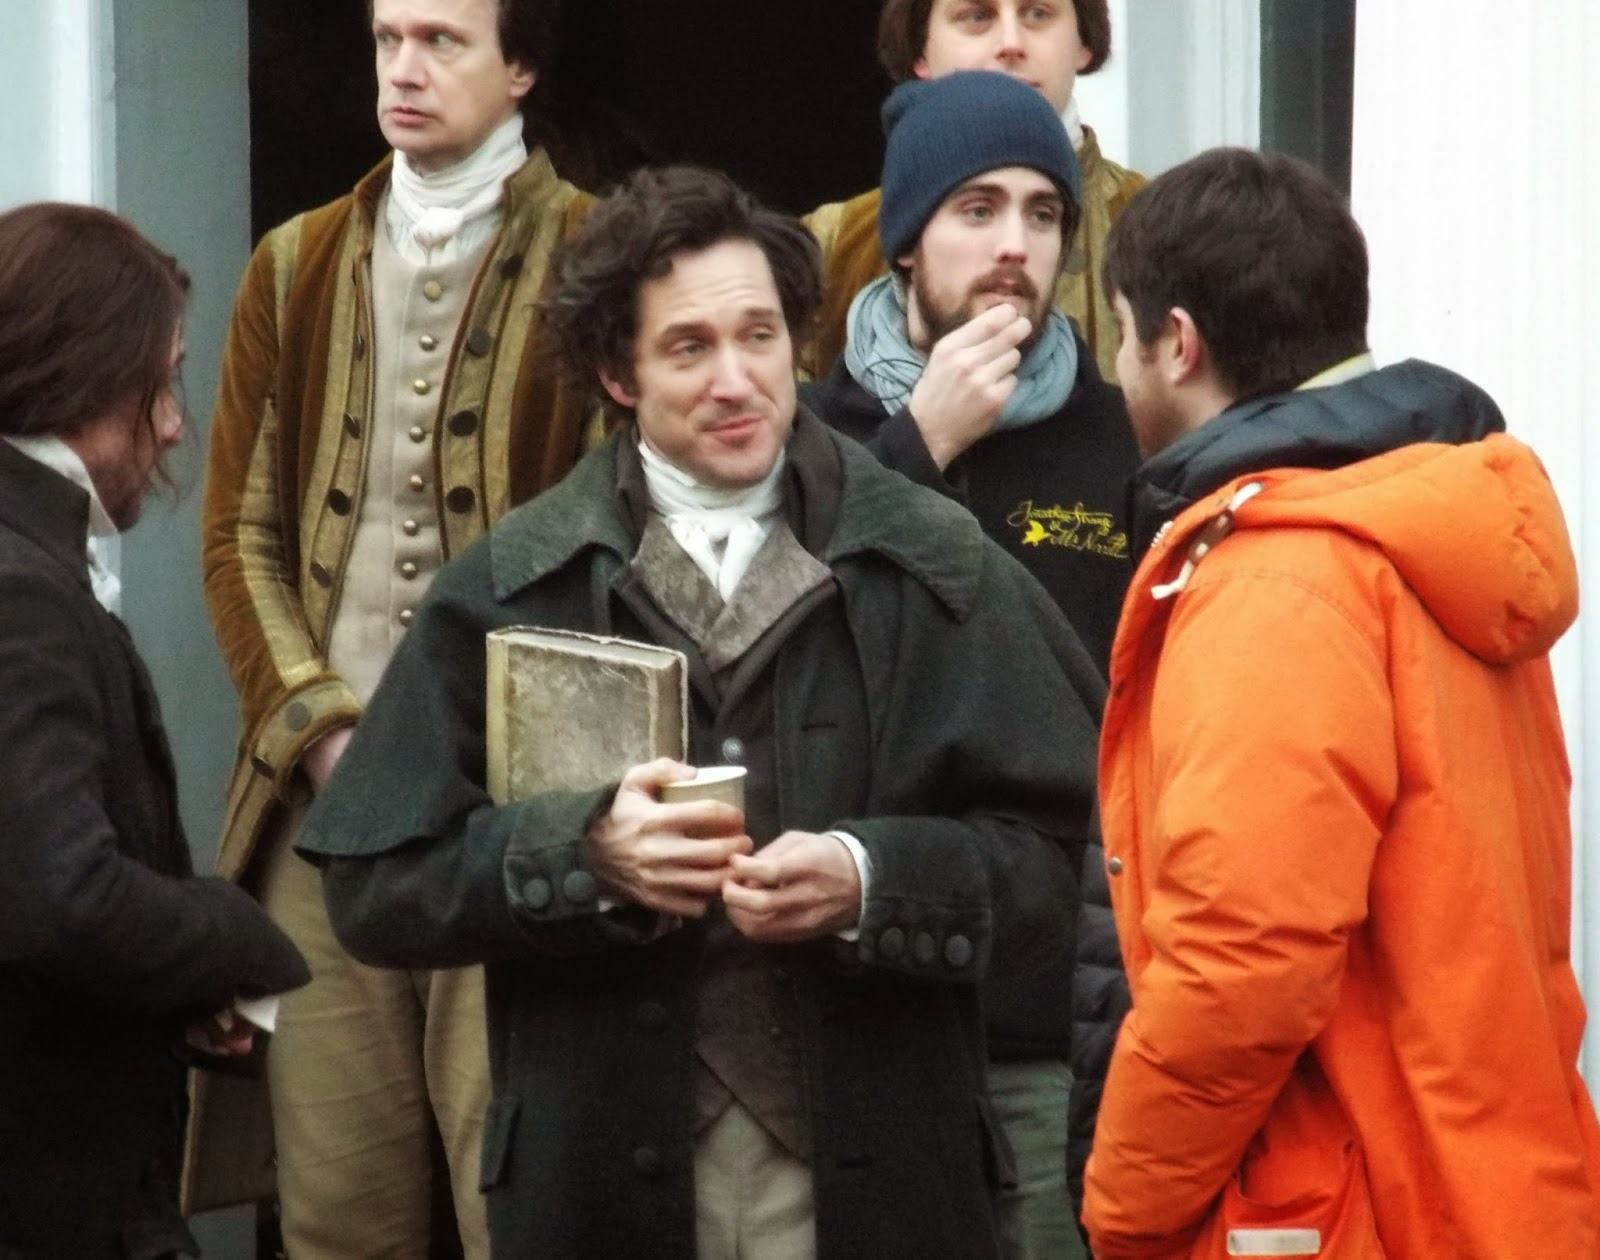 Bertie Cavel Jonathan Strange and Mr Norrell